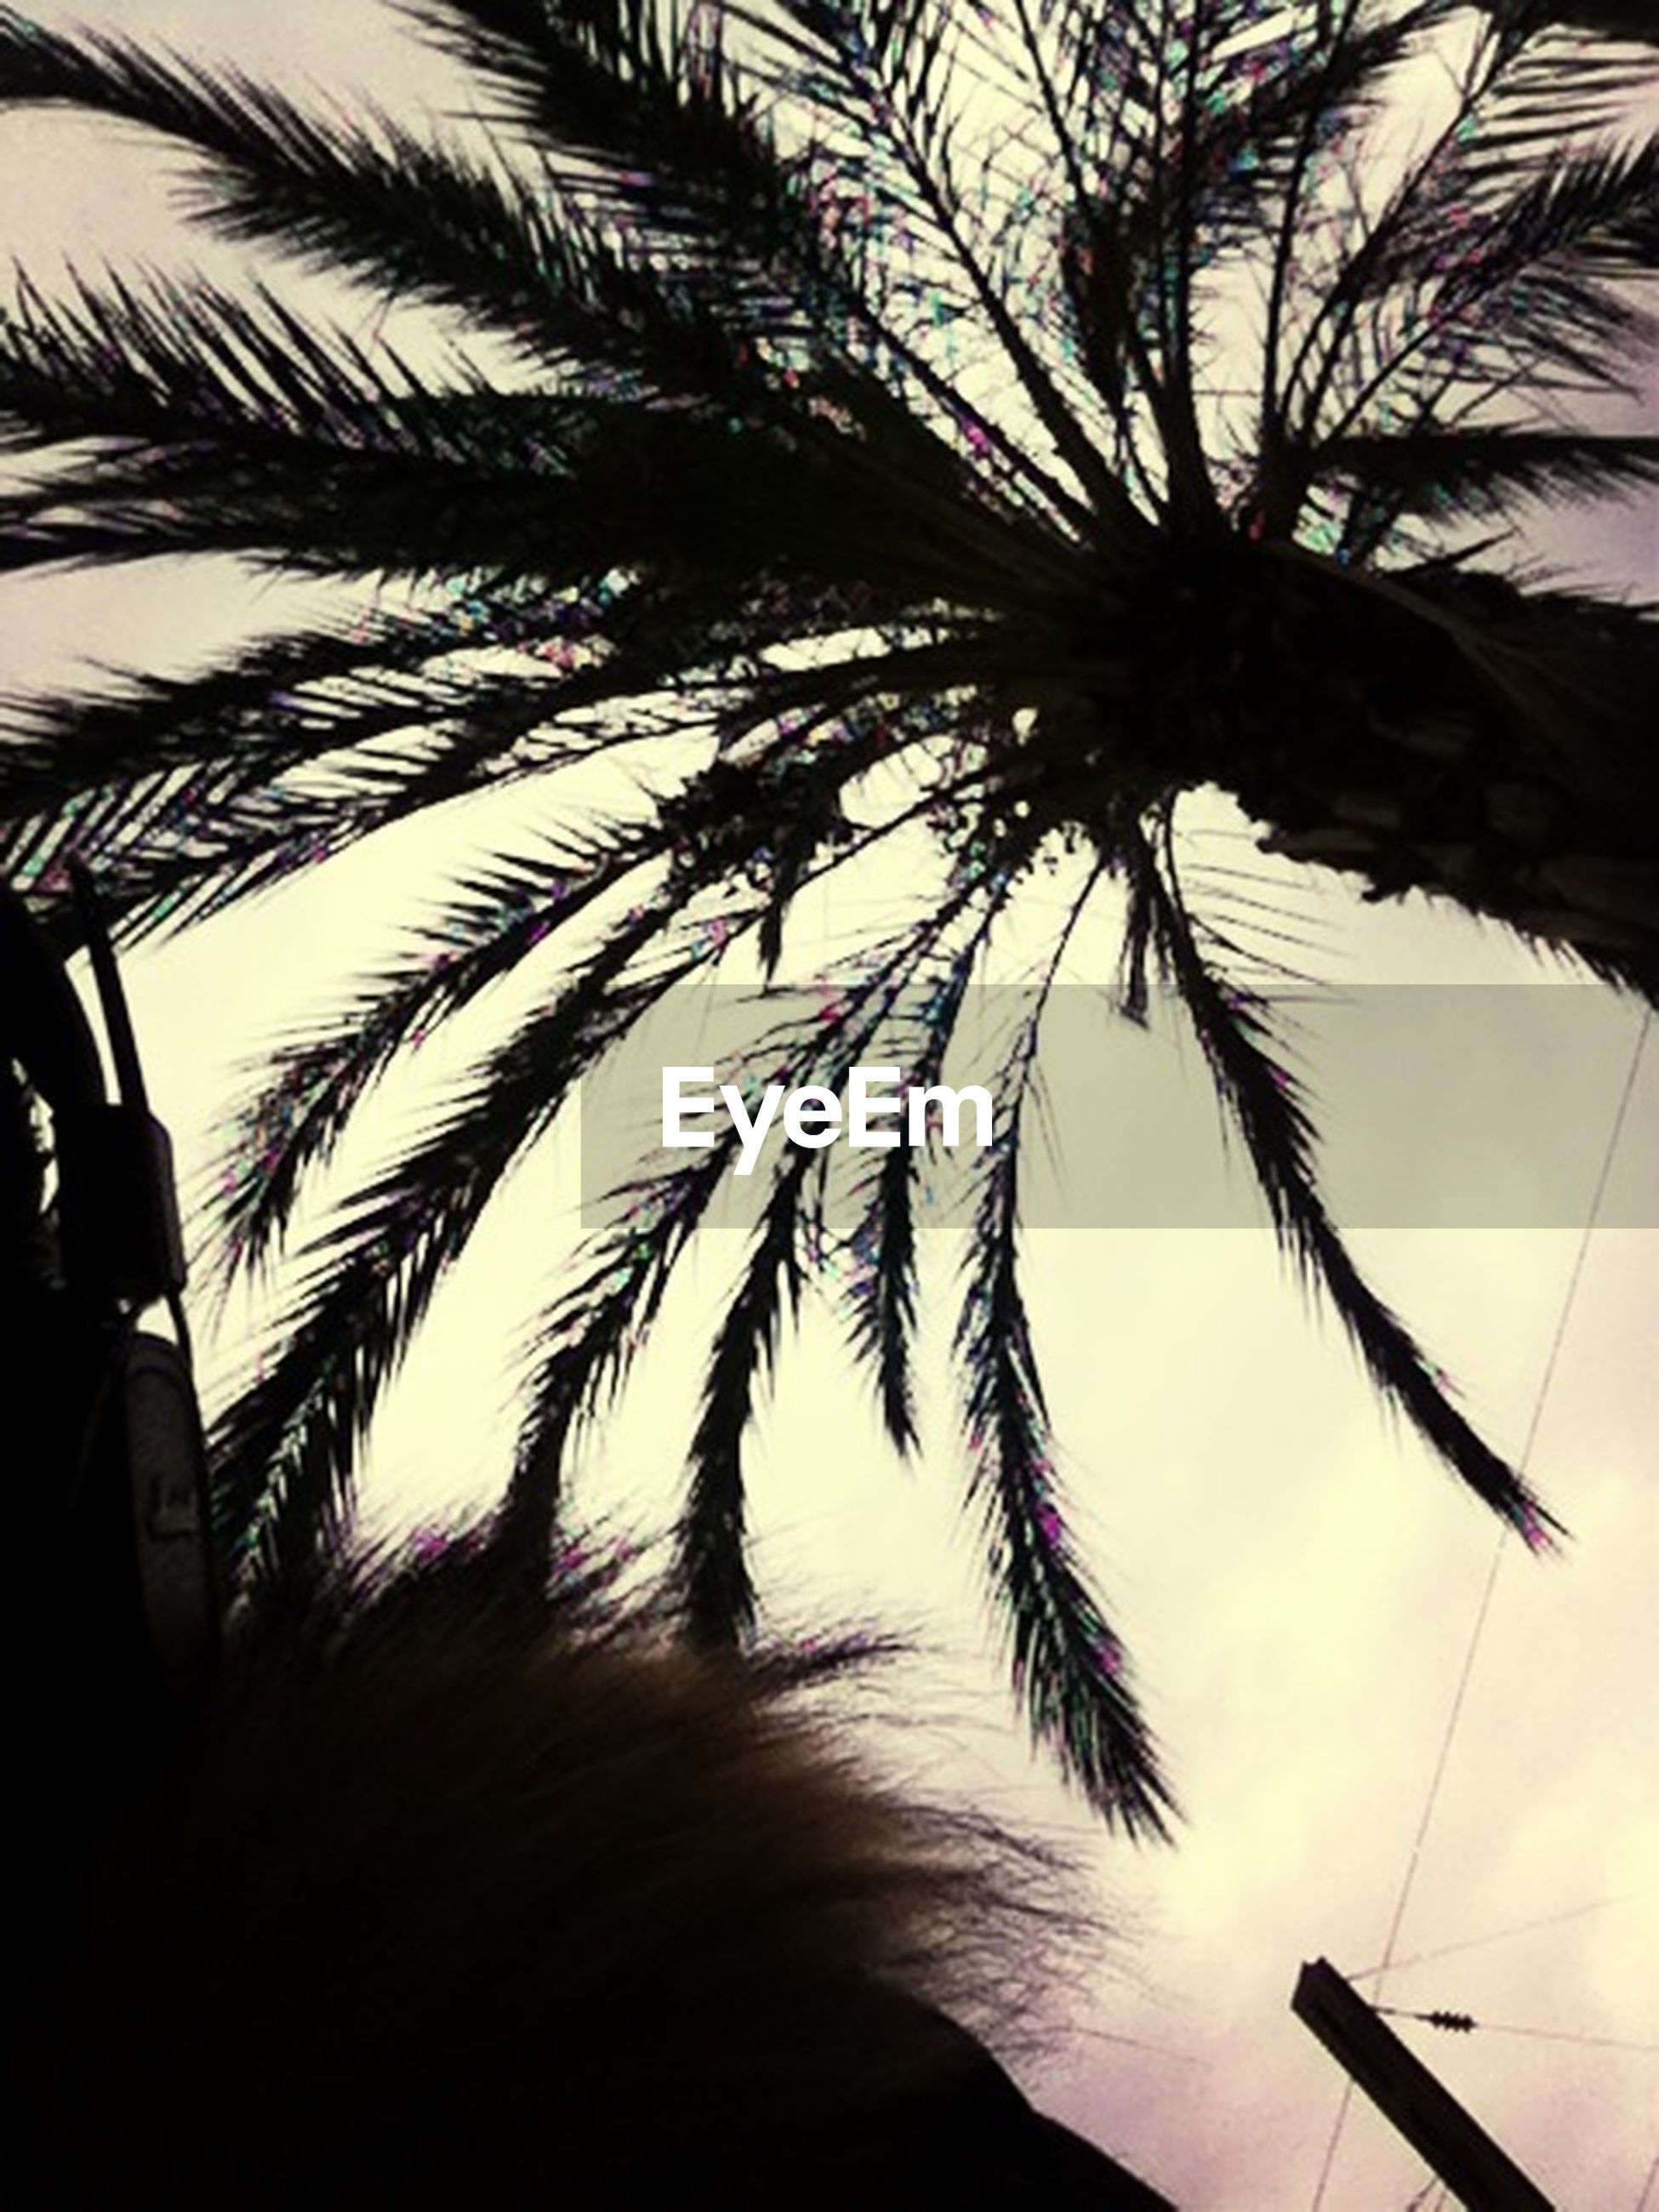 palm tree, silhouette, growth, tree, sky, low angle view, sunset, nature, palm leaf, tranquility, beauty in nature, outdoors, part of, tree trunk, outline, coconut palm tree, day, plant, dusk, no people